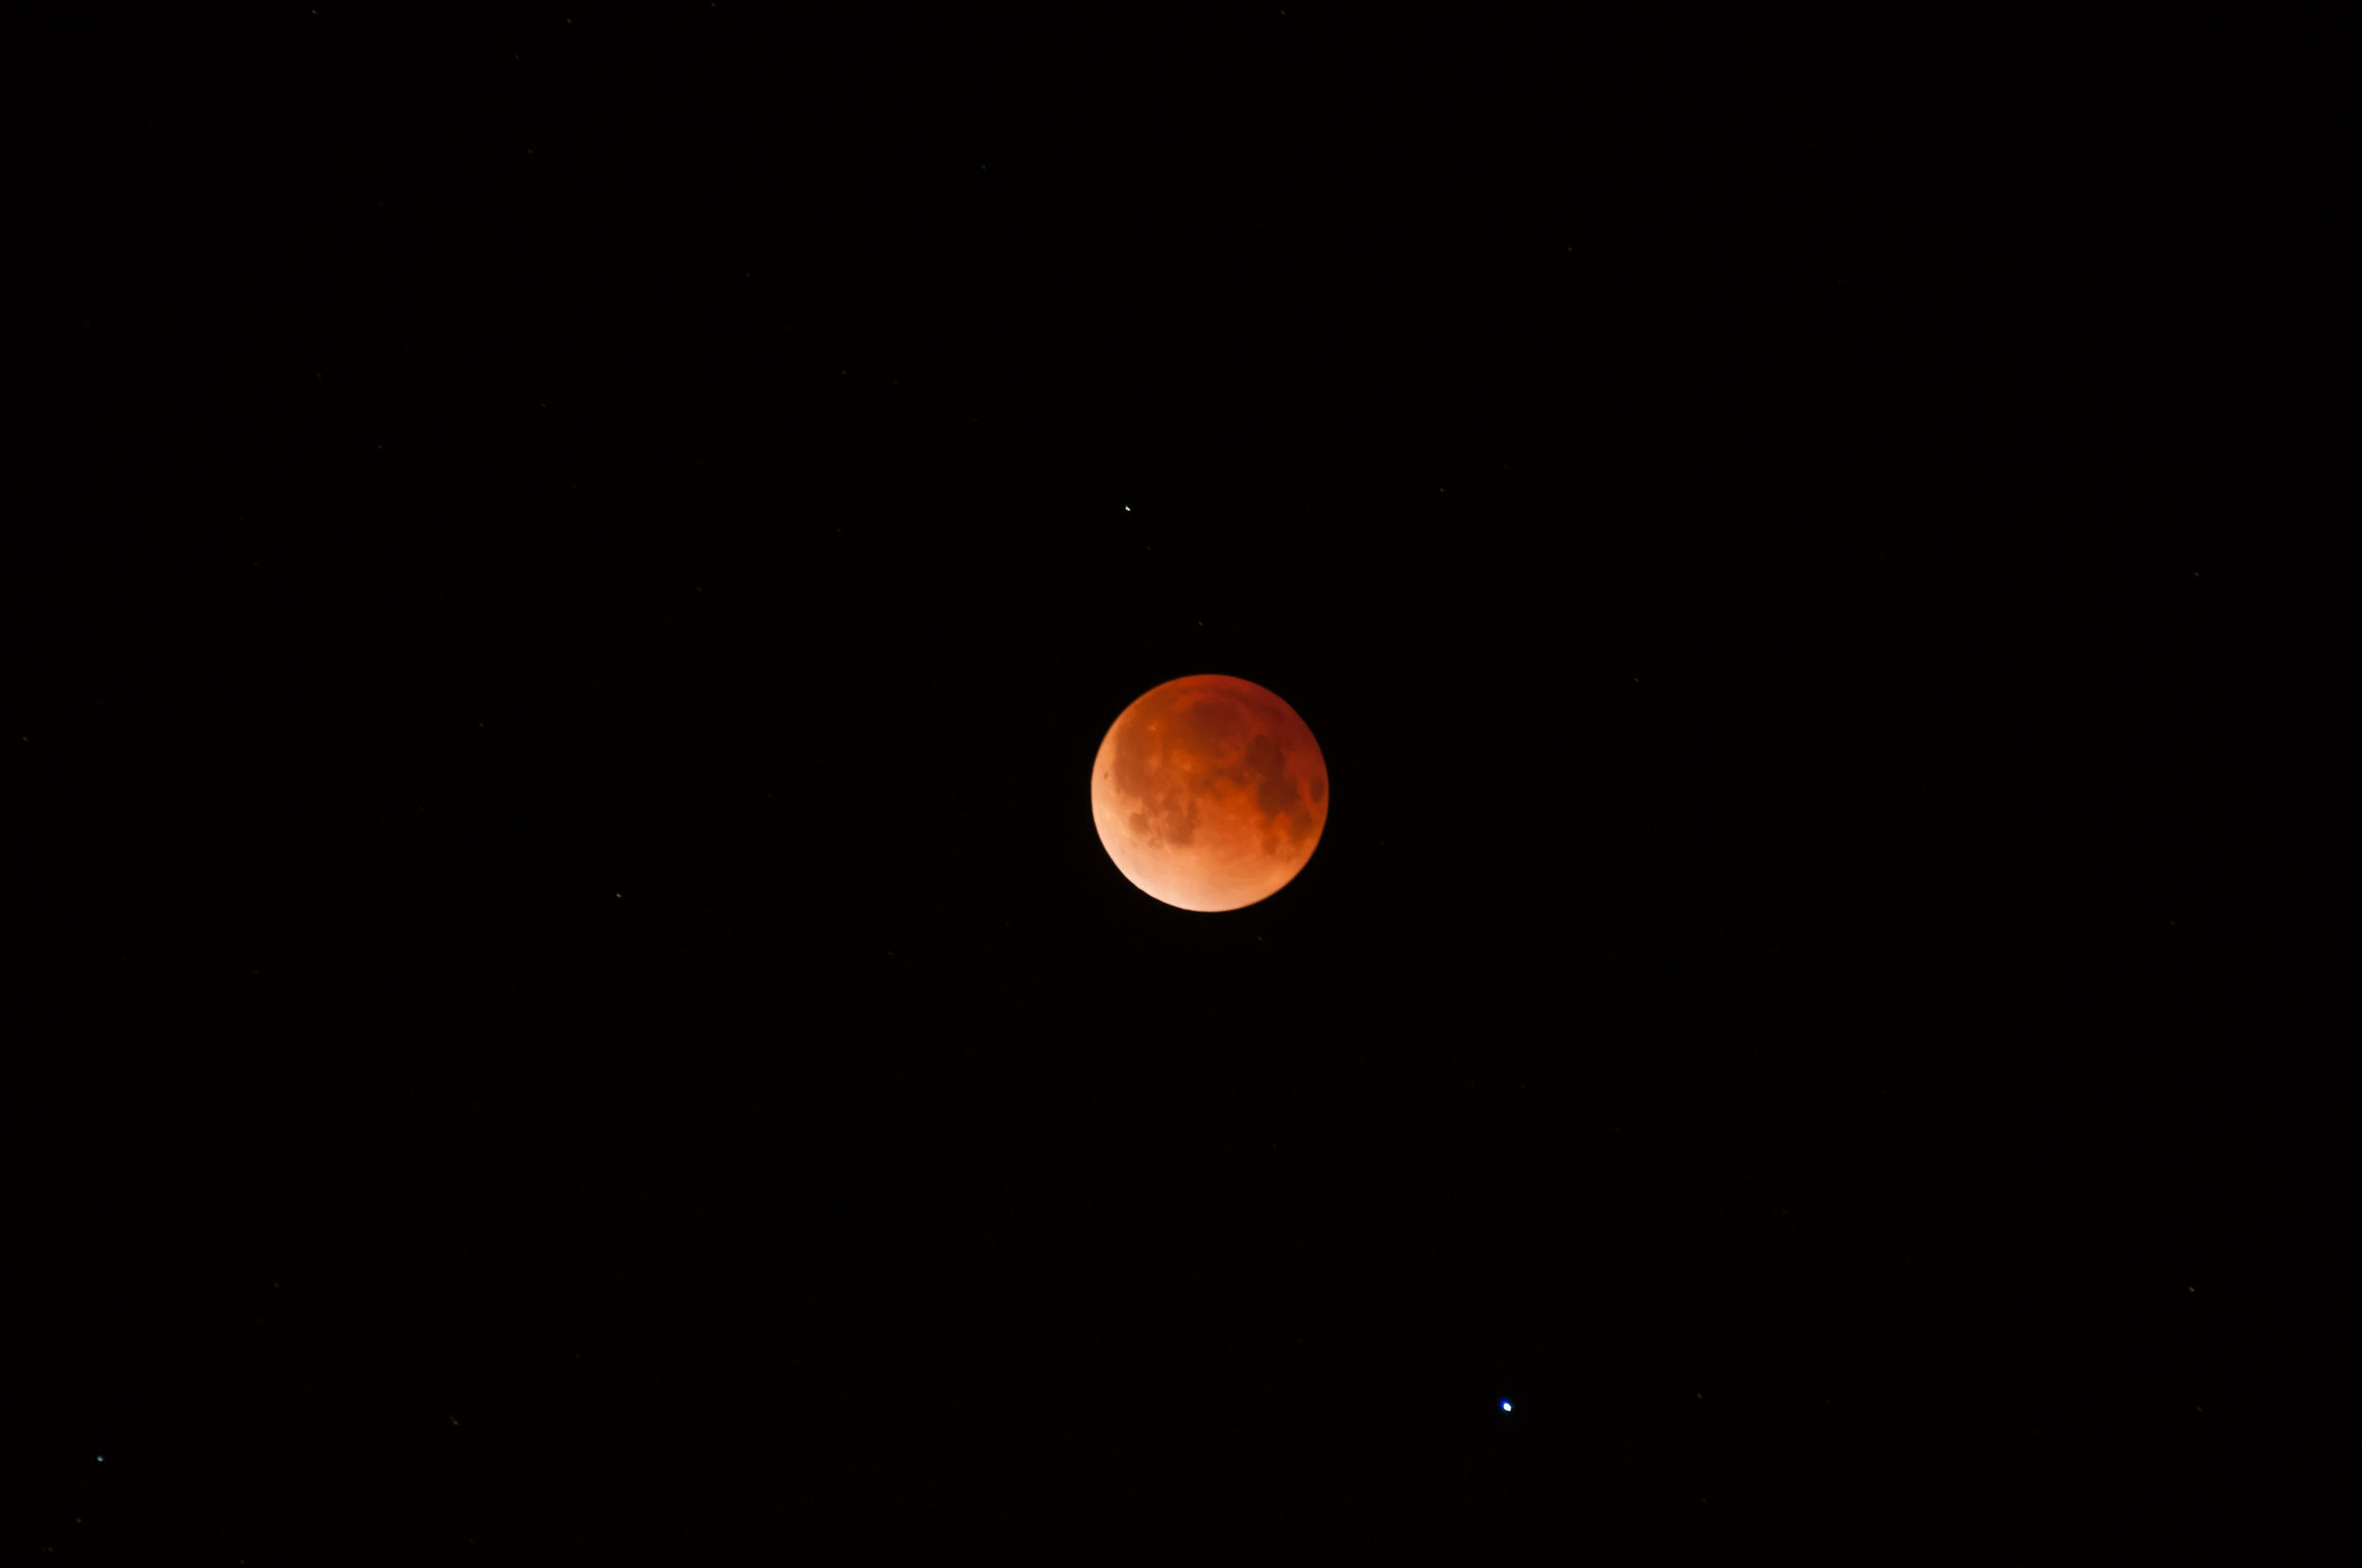 Moon in total eclipse with Spica beneath